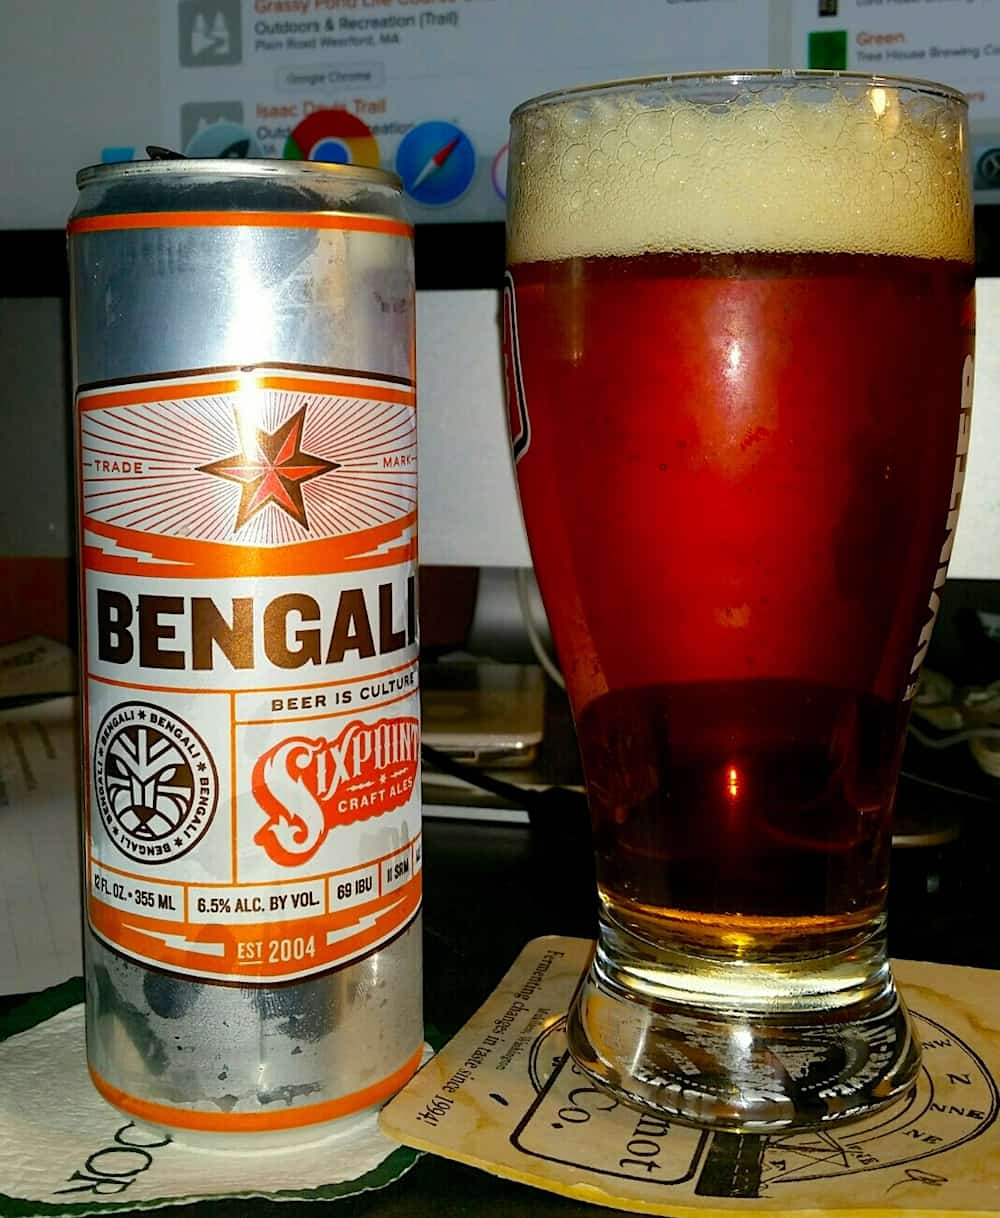 Bengali Beer from Sixpoint Brewery.